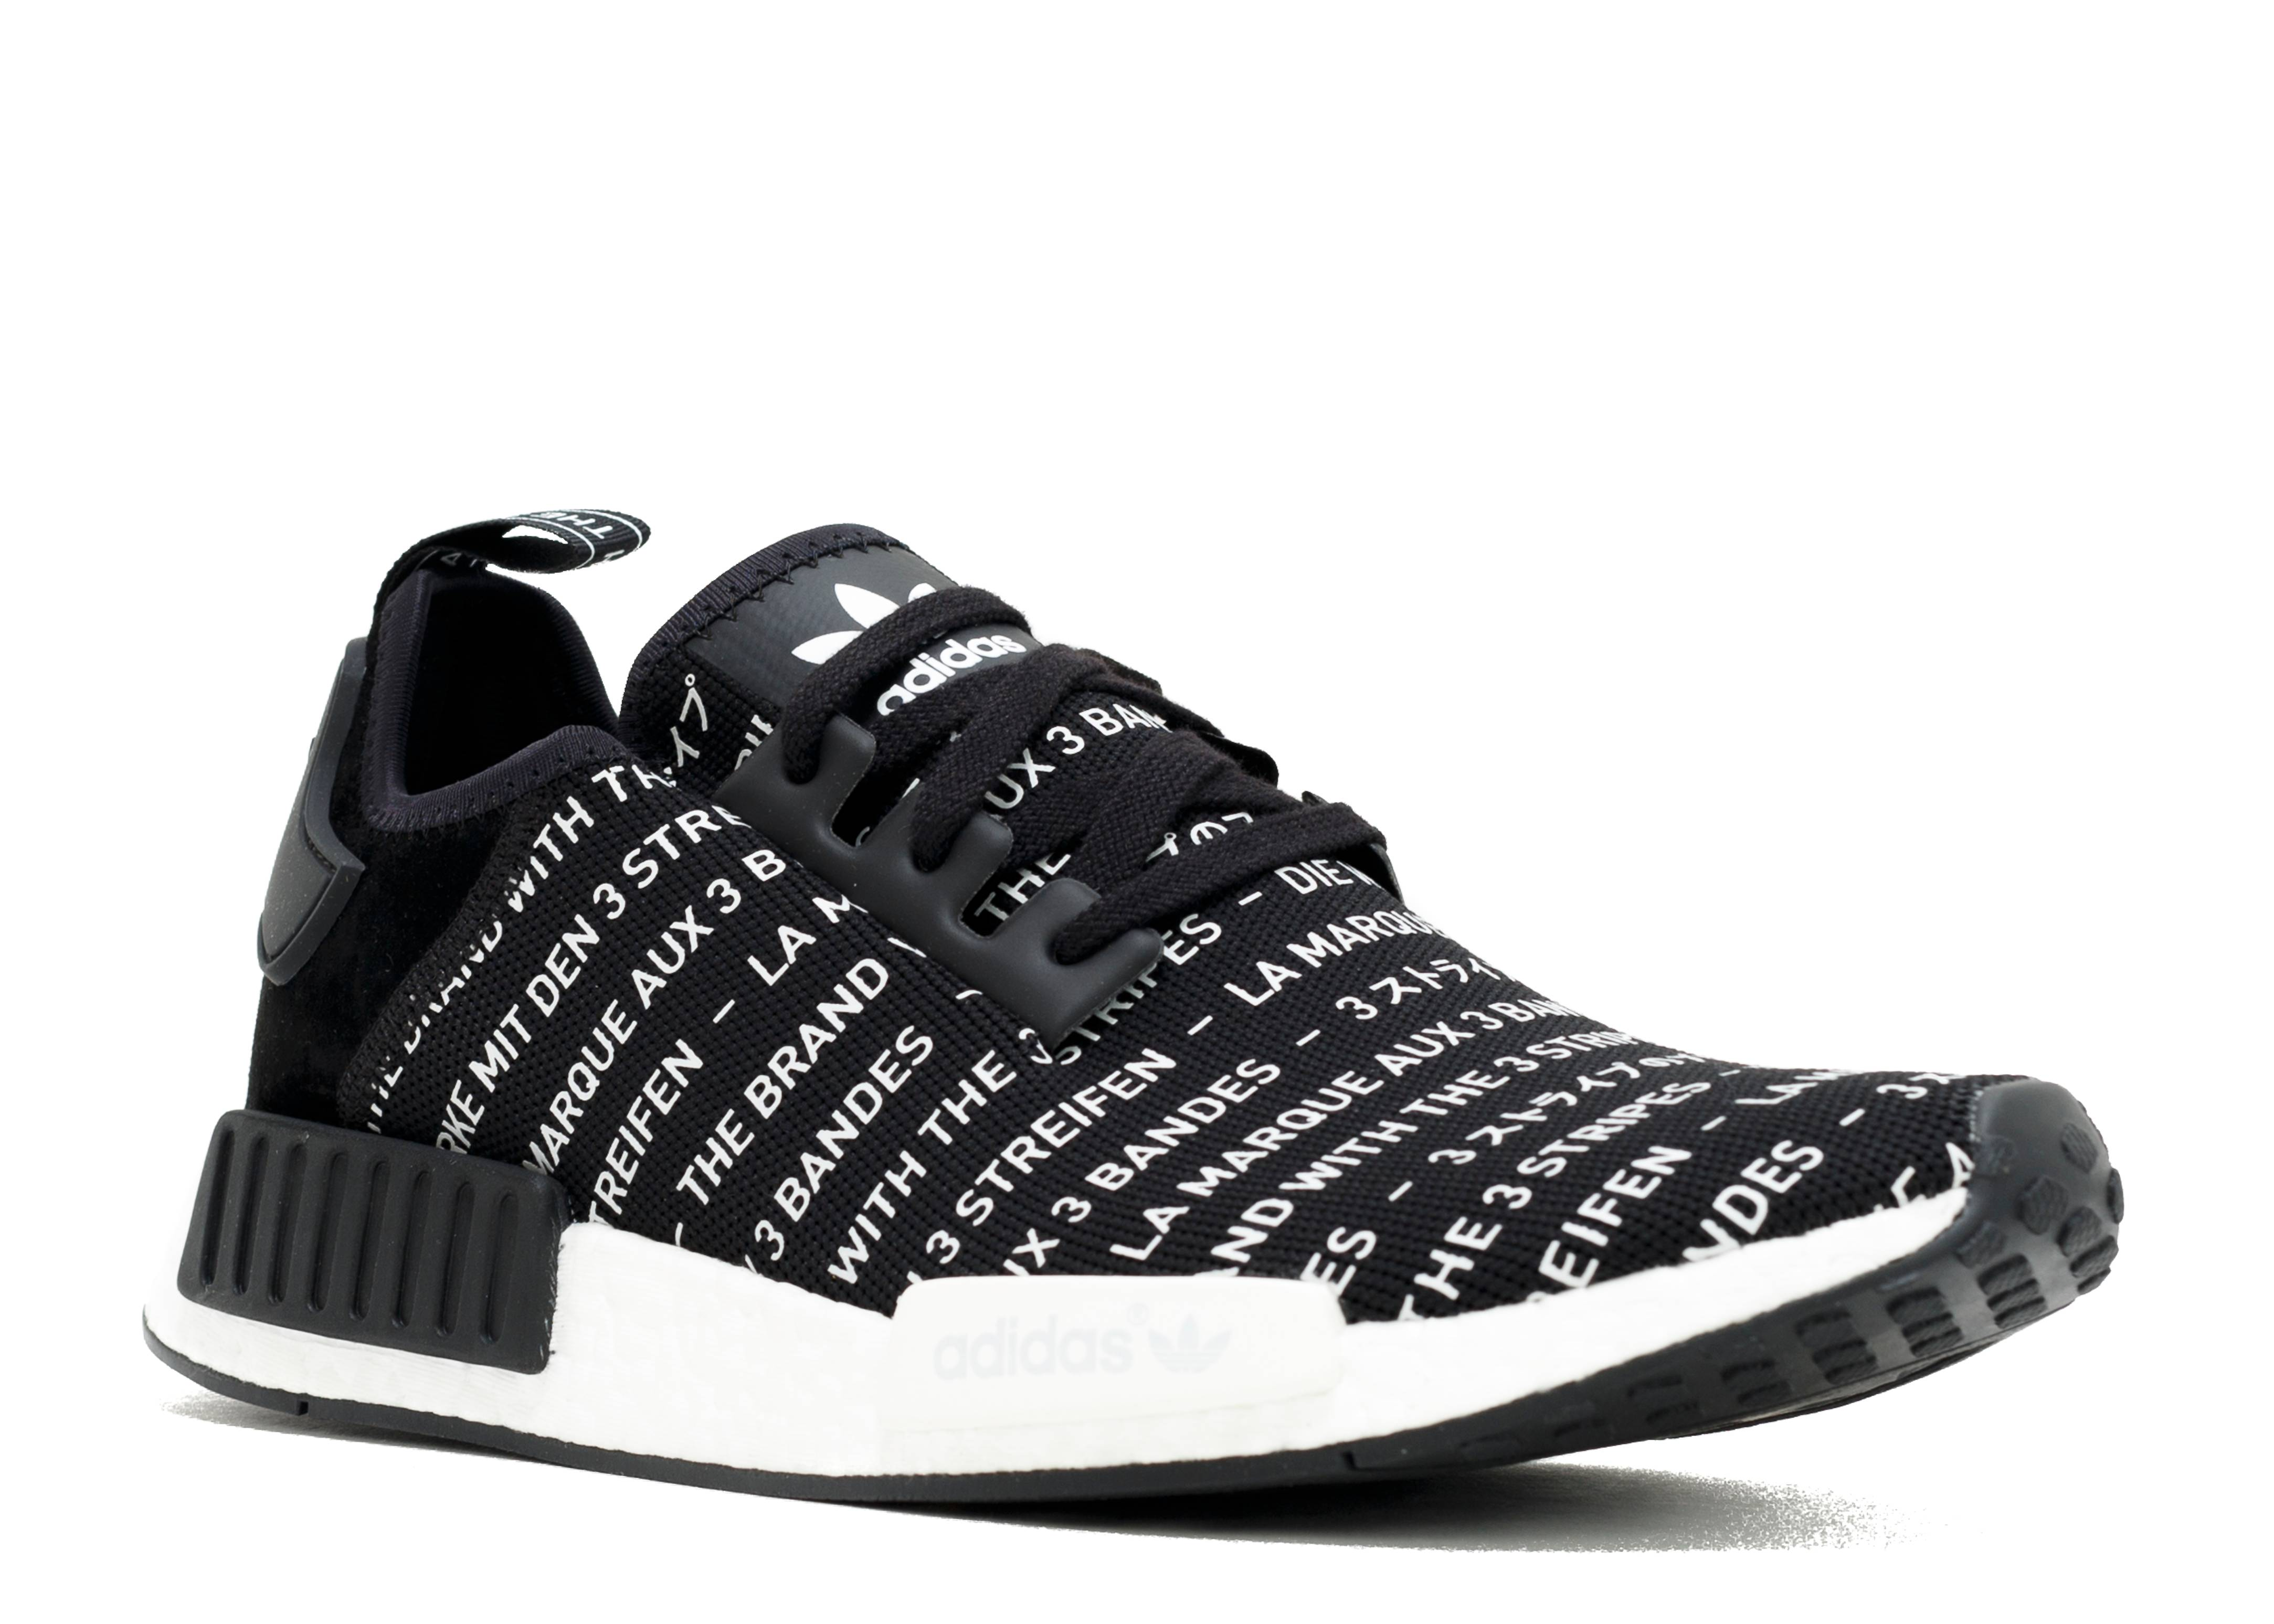 Men's Adidas NMD R1 Black Tri Color Japan F99712